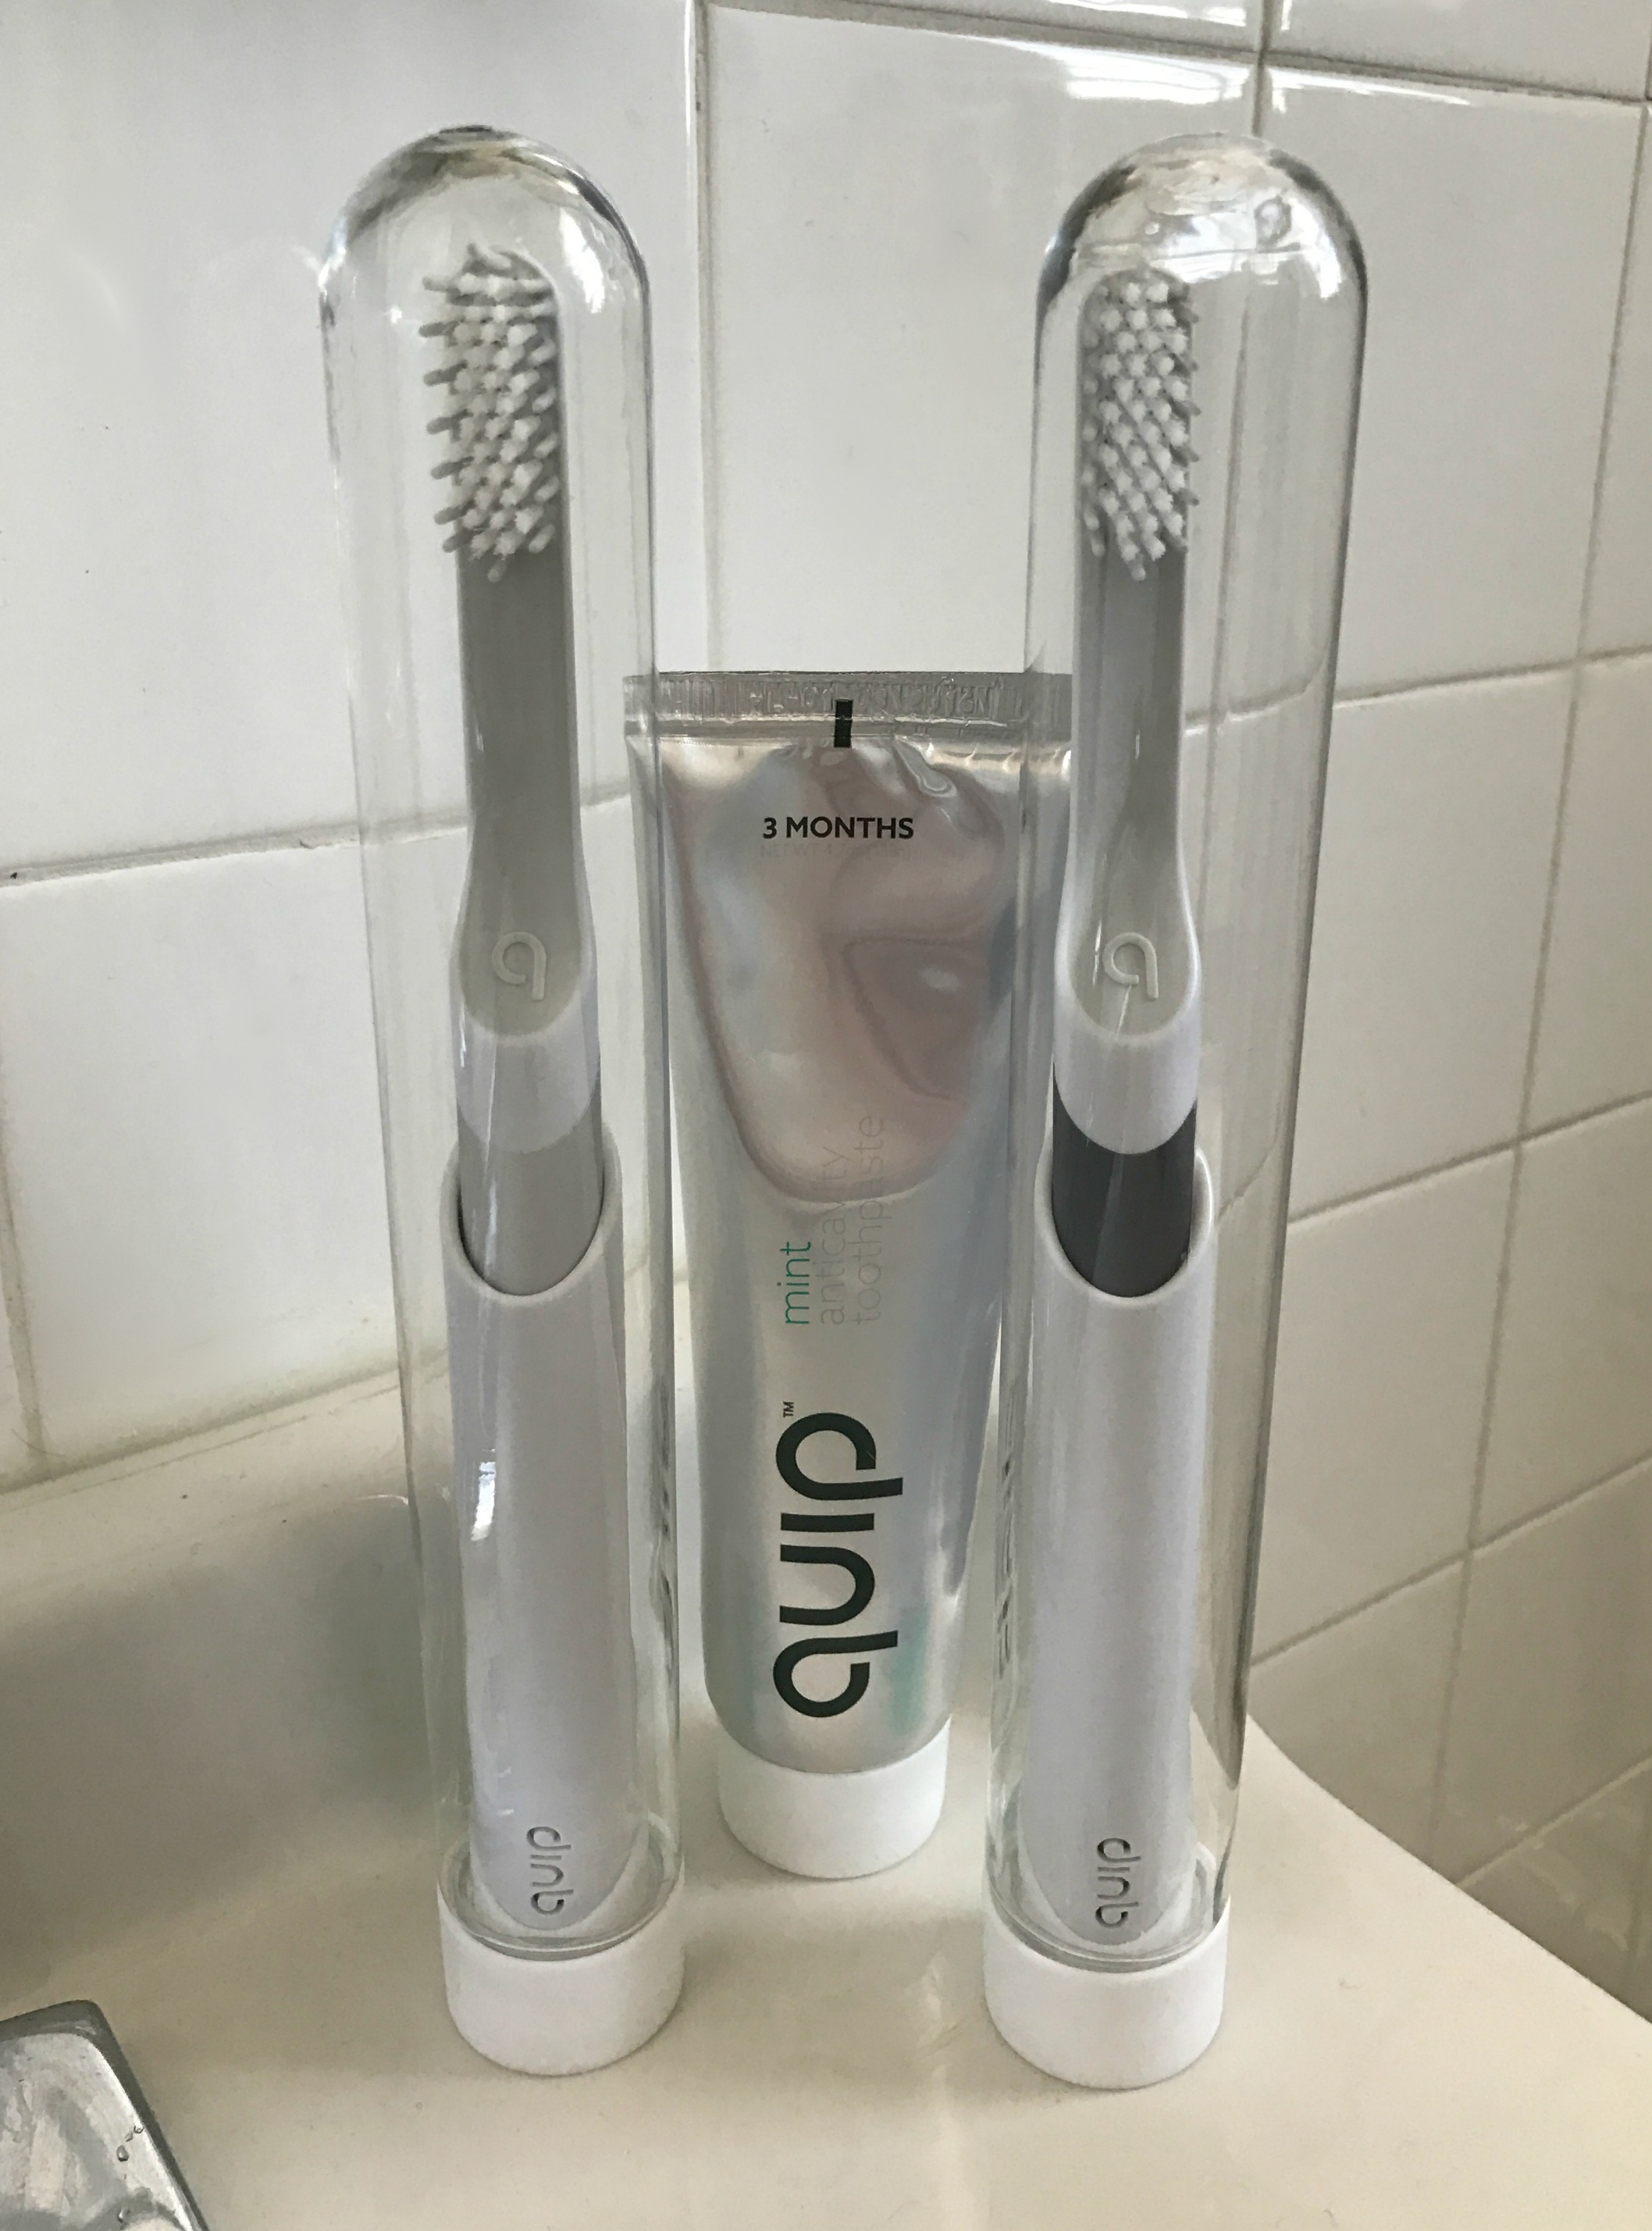 quip-toothbrushes-and-delivery-service